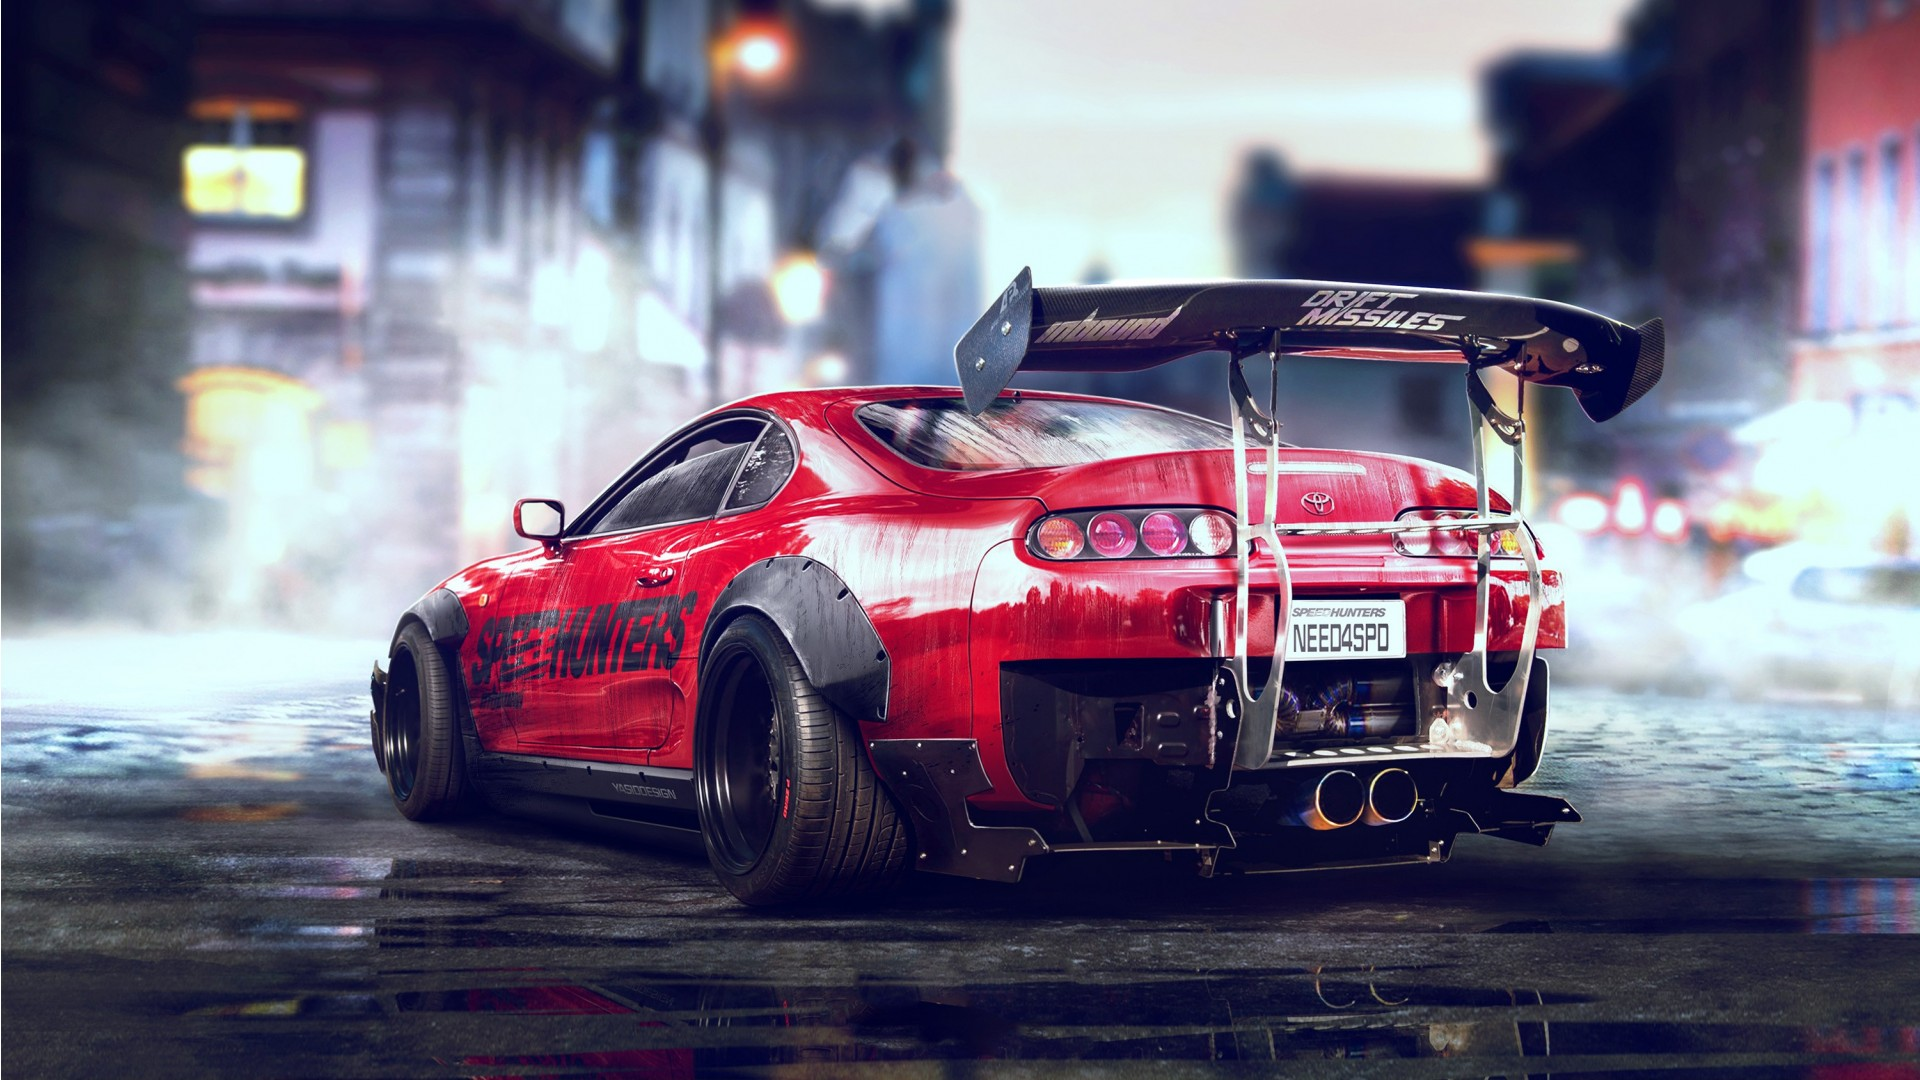 Toyota Supra Need For Speed Wallpaper Hd Car Wallpapers Id 7779